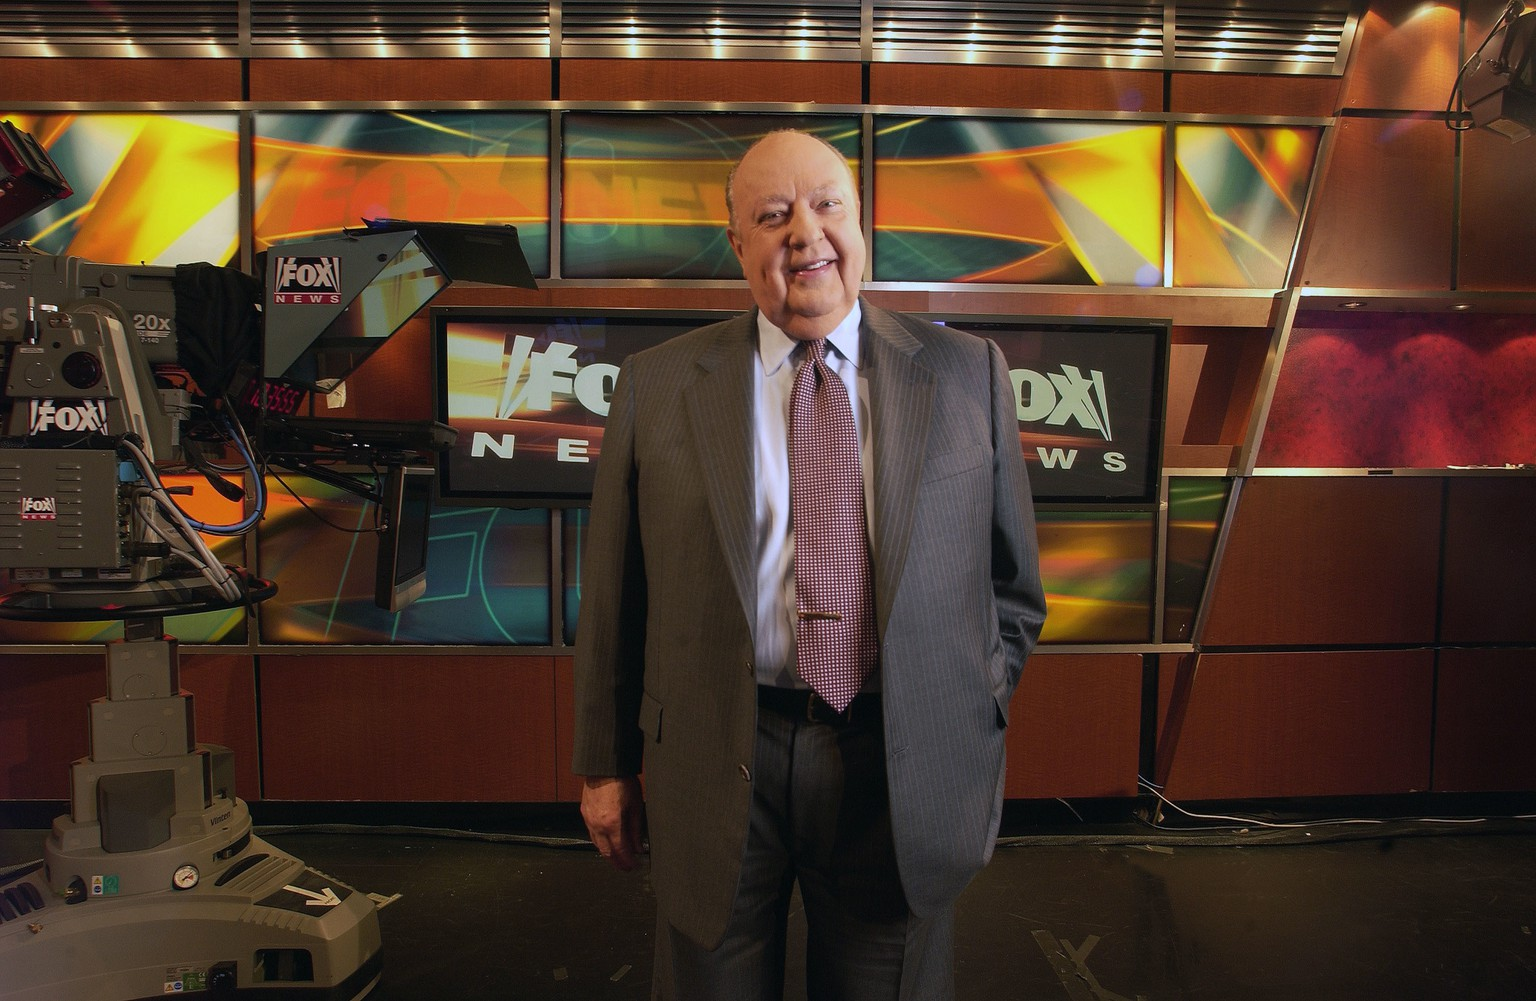 FILE - In this Sept. 29, 2006 file photo, Fox News CEO Roger Ailes poses at Fox News studio in New York. At age 76, Ailes has been vanquished from Fox News Channel, which he masterminded almost 20 years ago and had lorded over ever since. Little more than two weeks ago, a lawsuit filed by former Fox News host Gretchen Carlson charged him with sexual harassment. He denied her allegations, and those from other past and present female co-workers who spoke up after her. But with blistering speed his reign ended Thursday, July 21, 2016. (AP Photo/Jim Cooper, File)